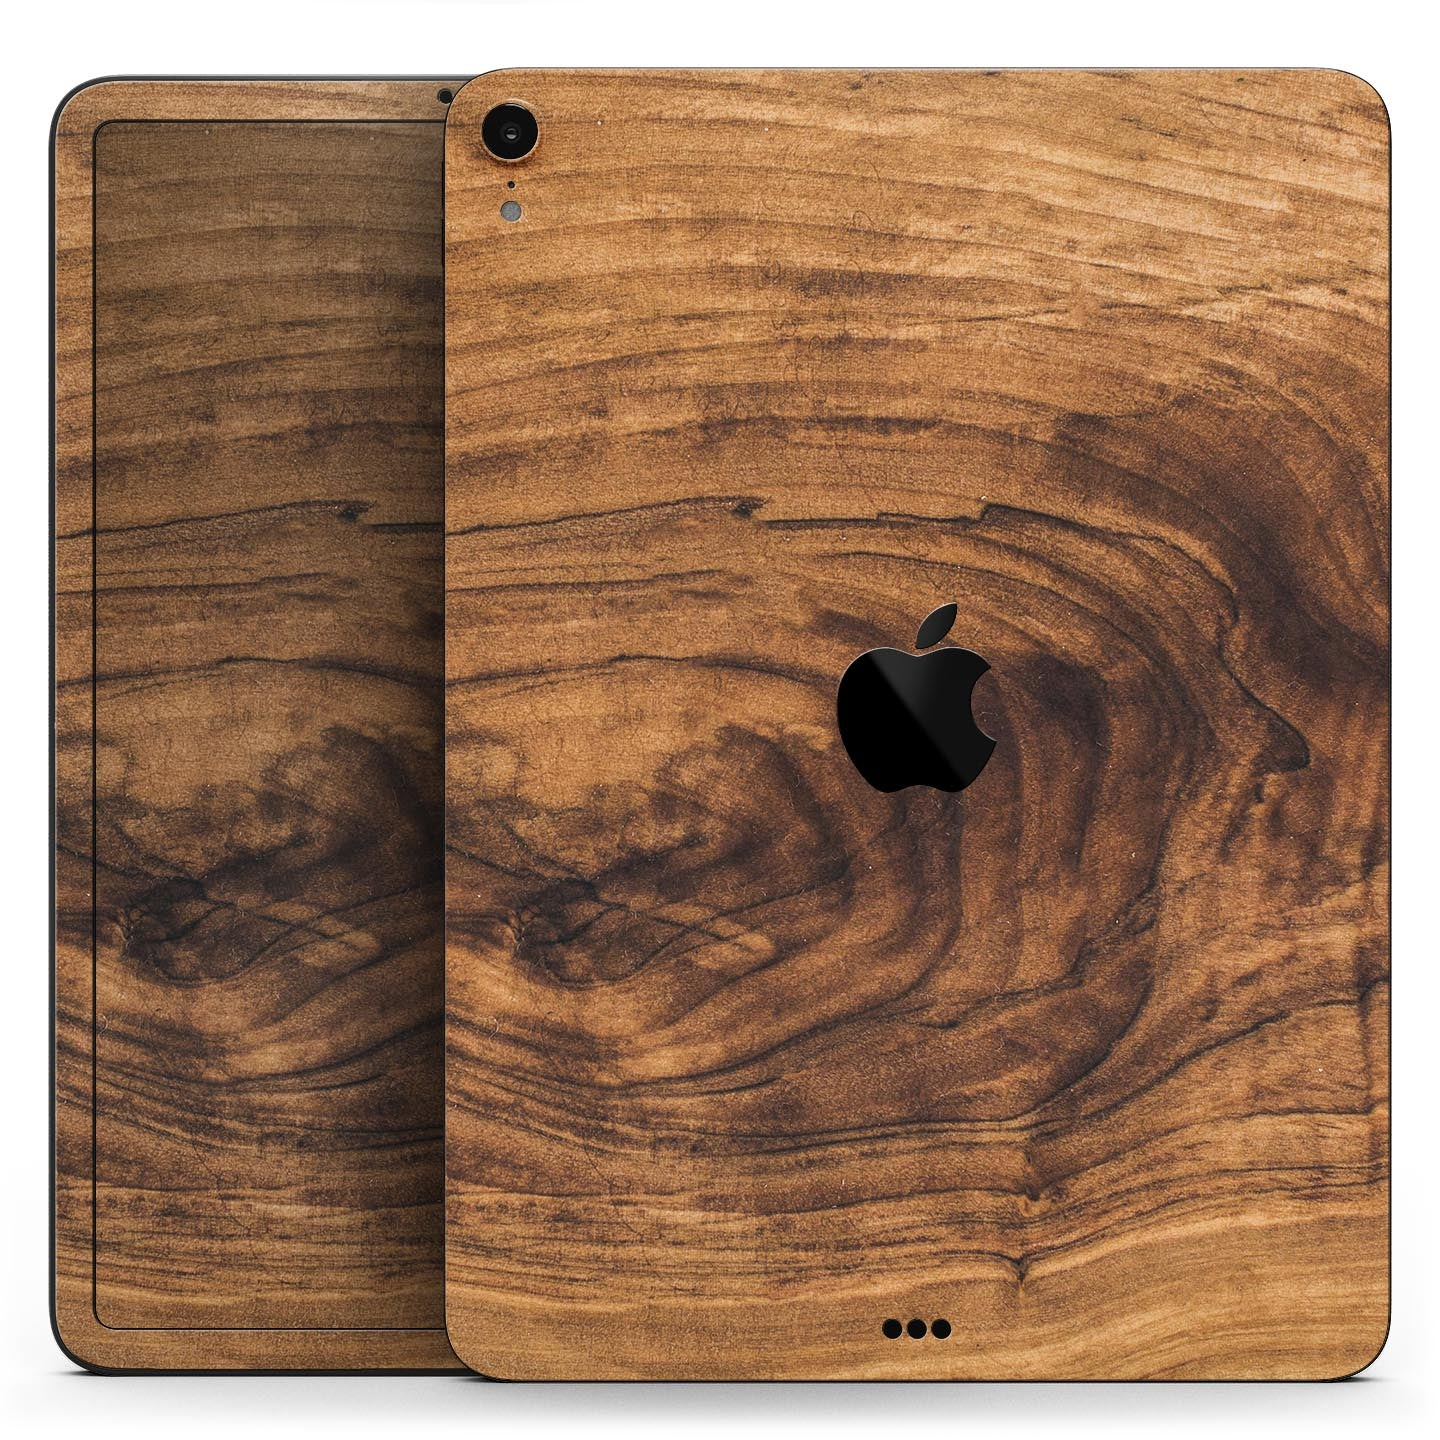 """Raw Wood Planks V11 - Full Body Skin Decal for the Apple iPad Pro 12.9"""", 11"""", 10.5"""", 9.7"""", Air or Mini (All Models Available)"""